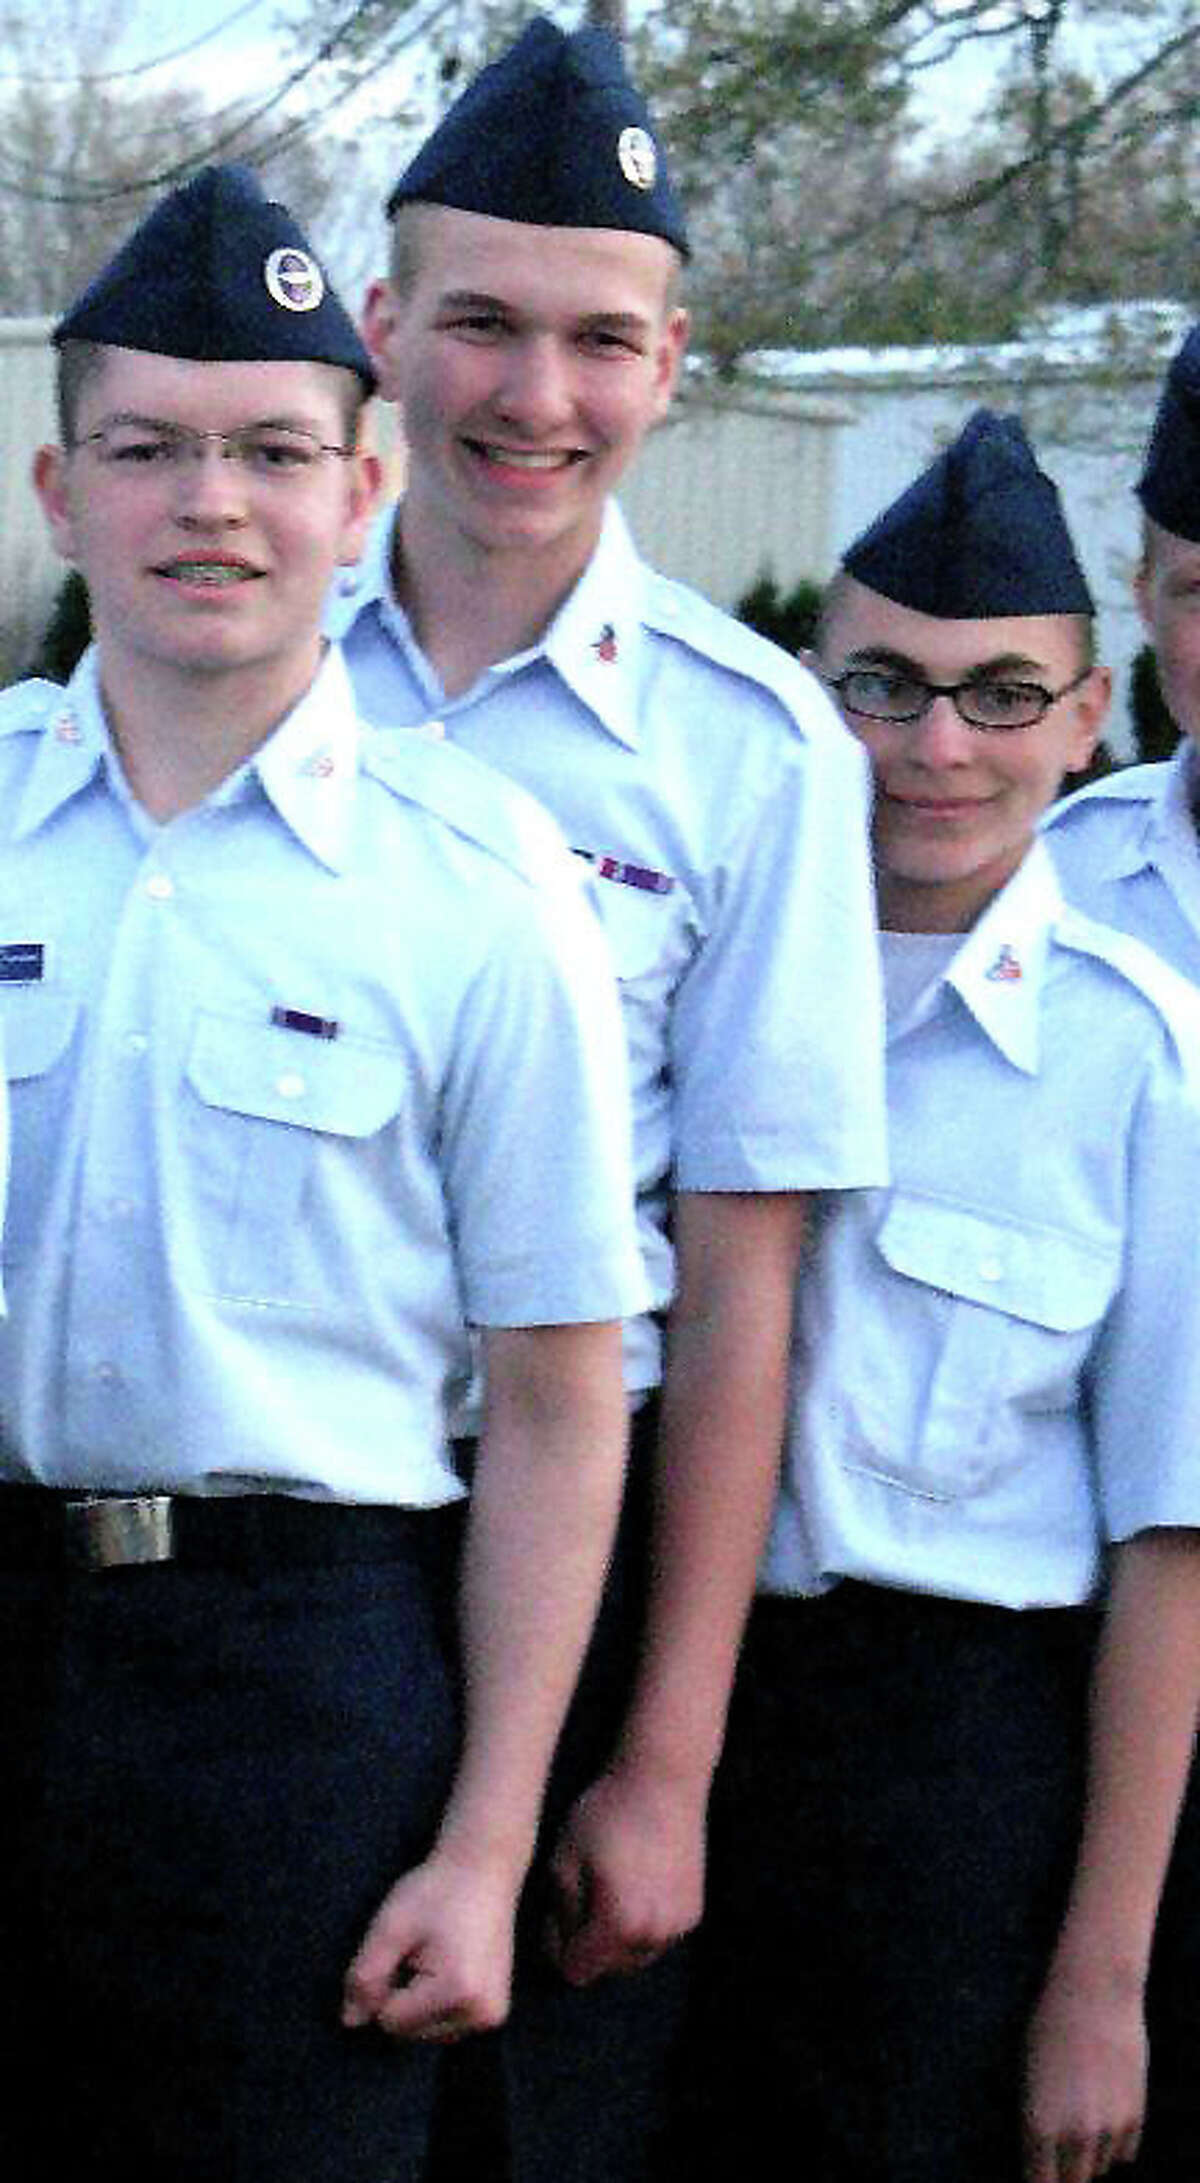 Andre Vasquez, left, and Tyler Giuliano, right, are shown in a Civil Air Patrol encampment photo taken April 2012.